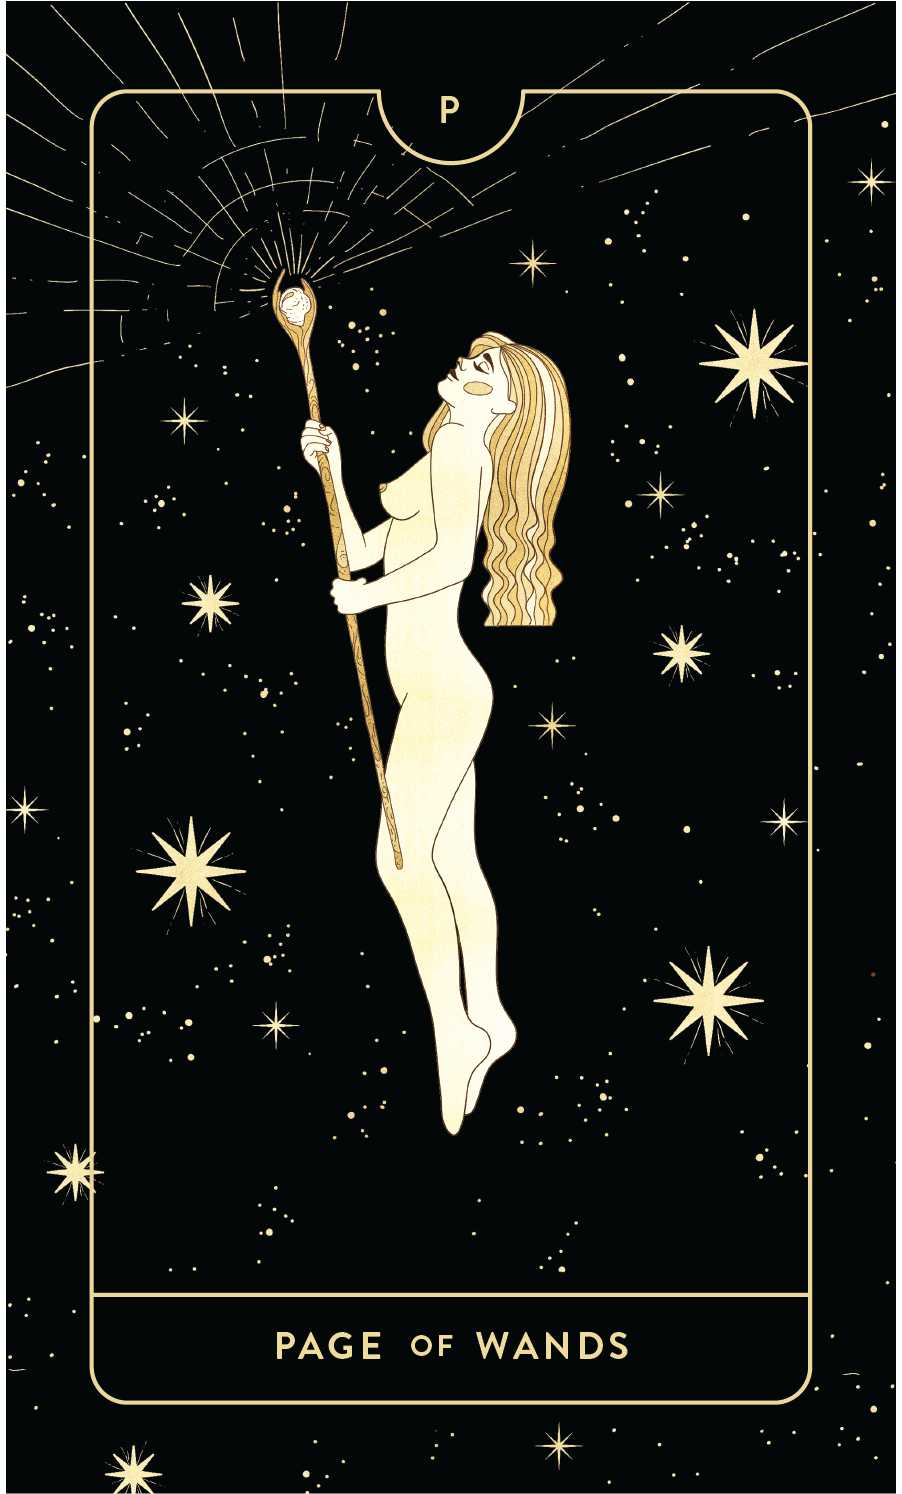 Divine Feminine Tarot Deck Page of Wands by Cocorrina